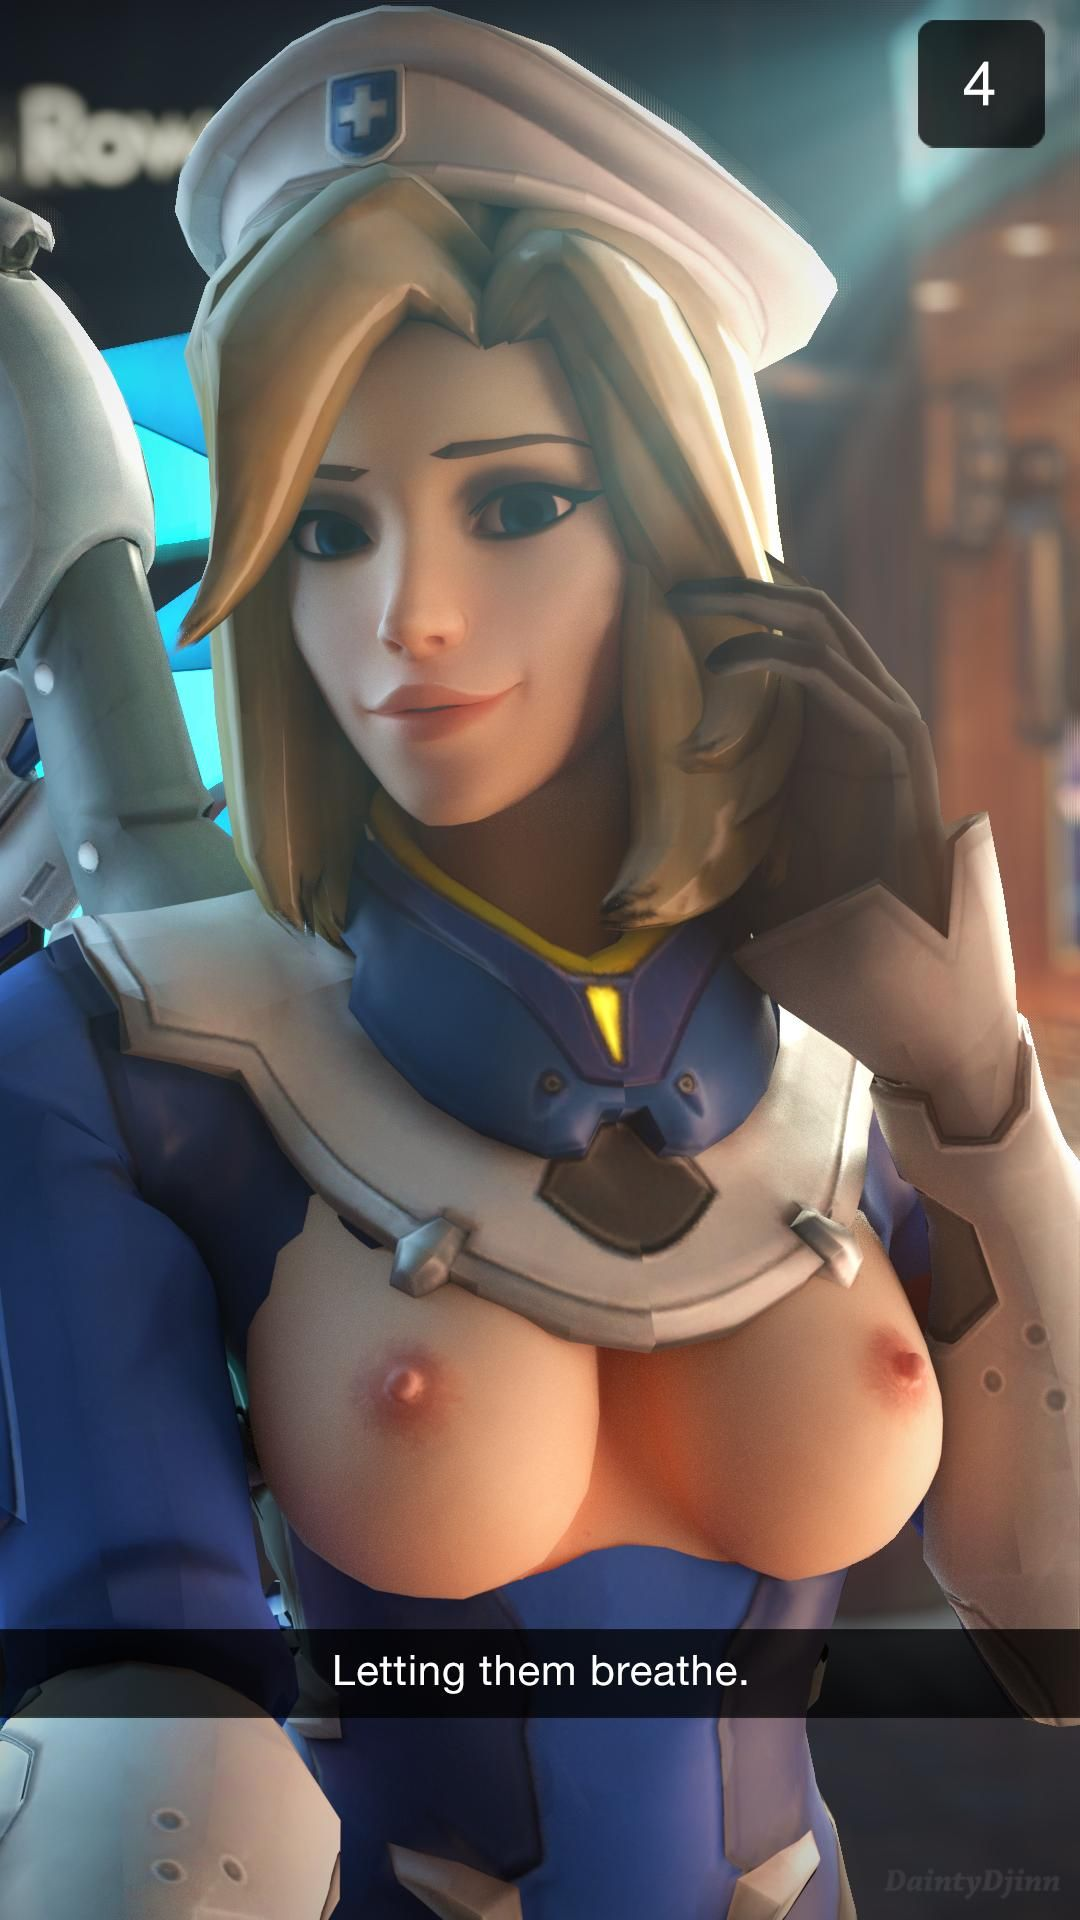 Barbie Doll Rule 34 Porn - Image result for rule 34 naked female overwatch